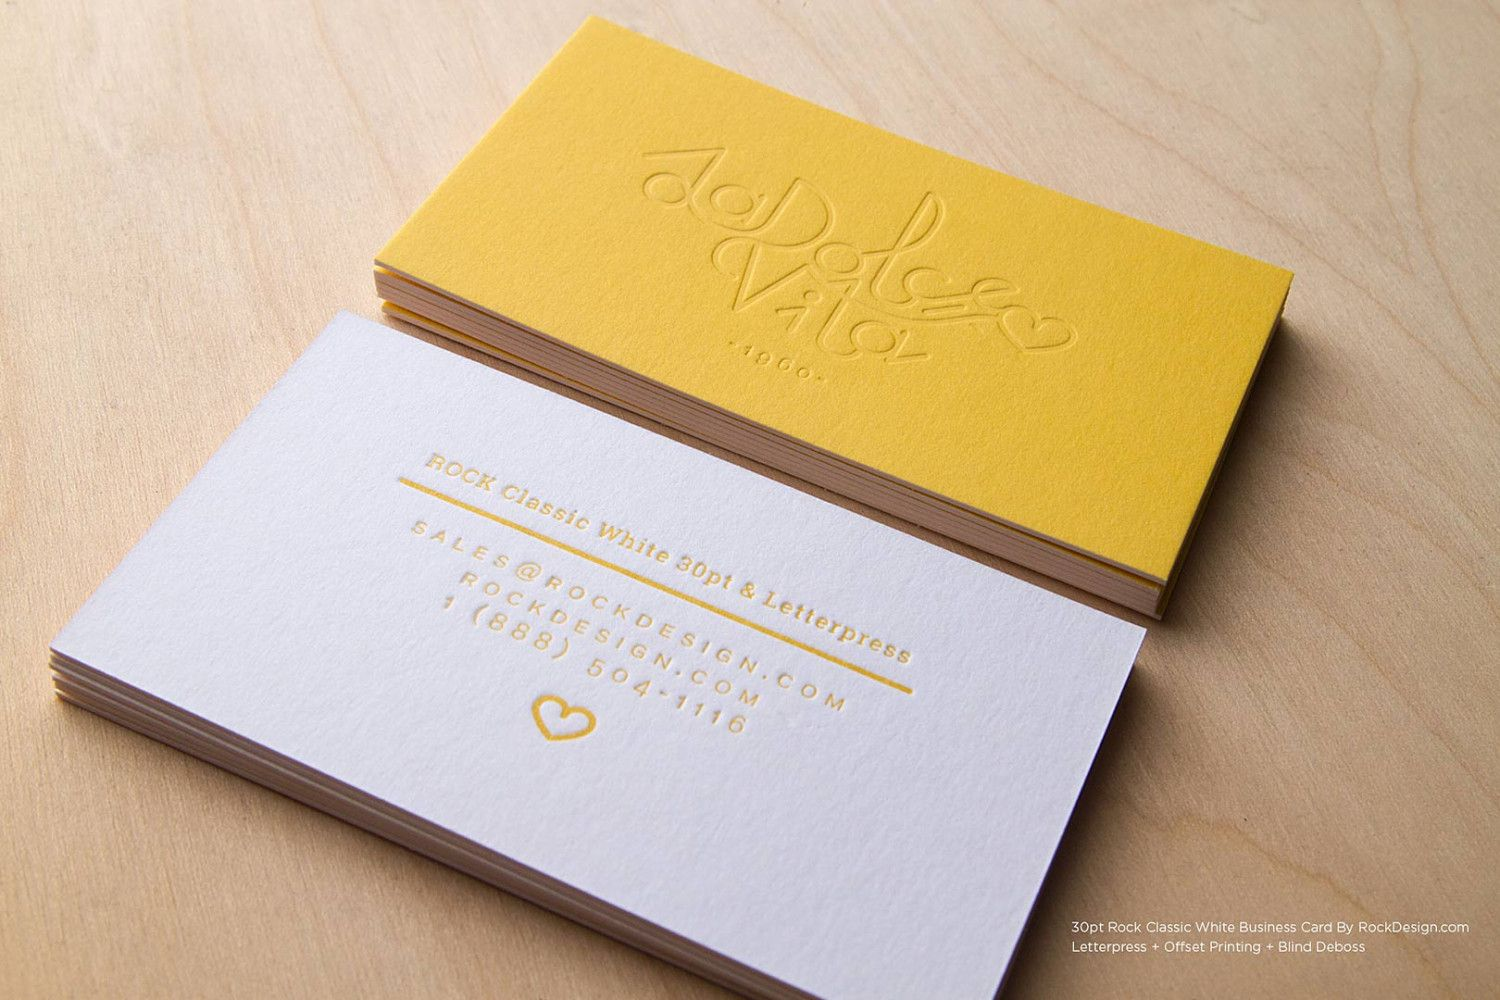 Pin by Sarah Vatel on business cards | Pinterest | Business cards